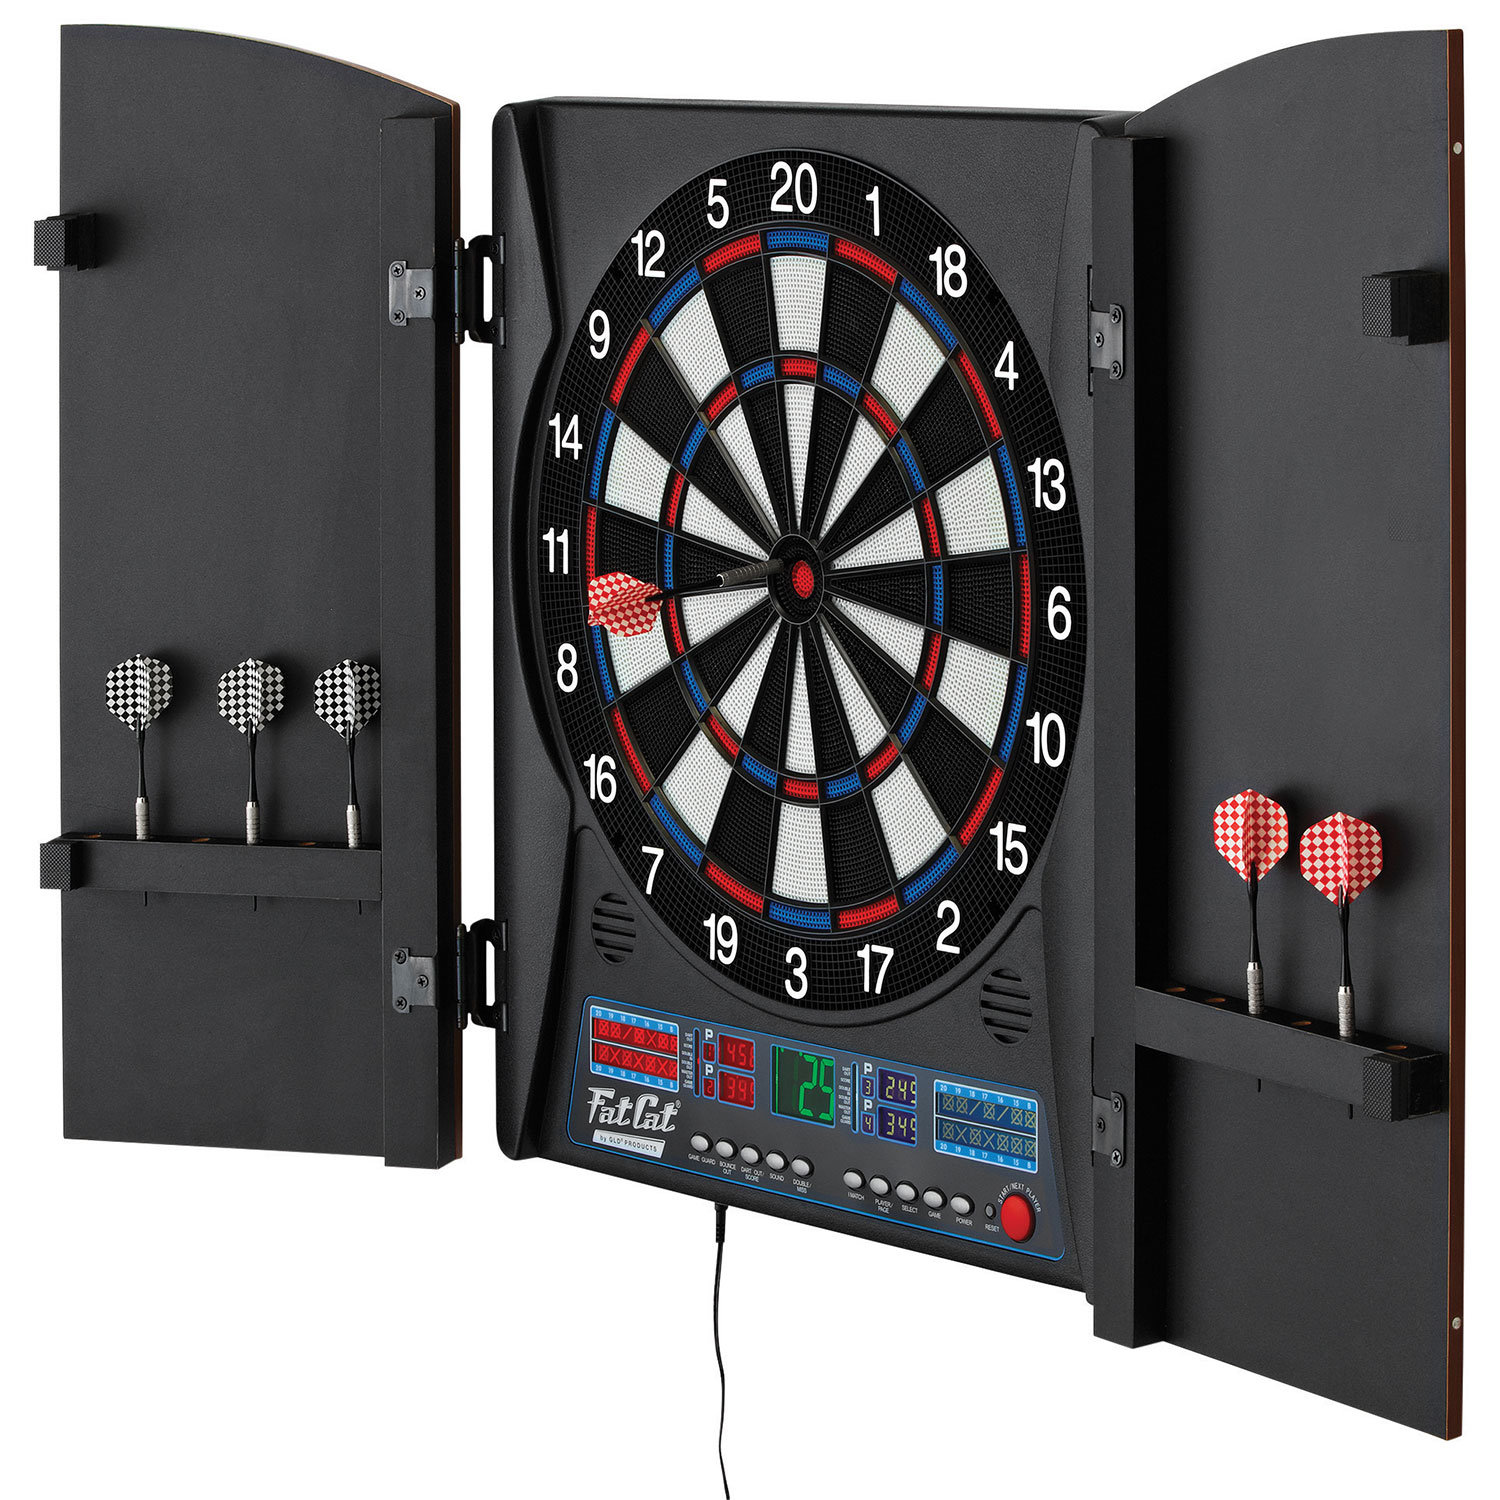 Viper 20 Soft Tip Electronic Dart Board Dart Games Best Buy Canada